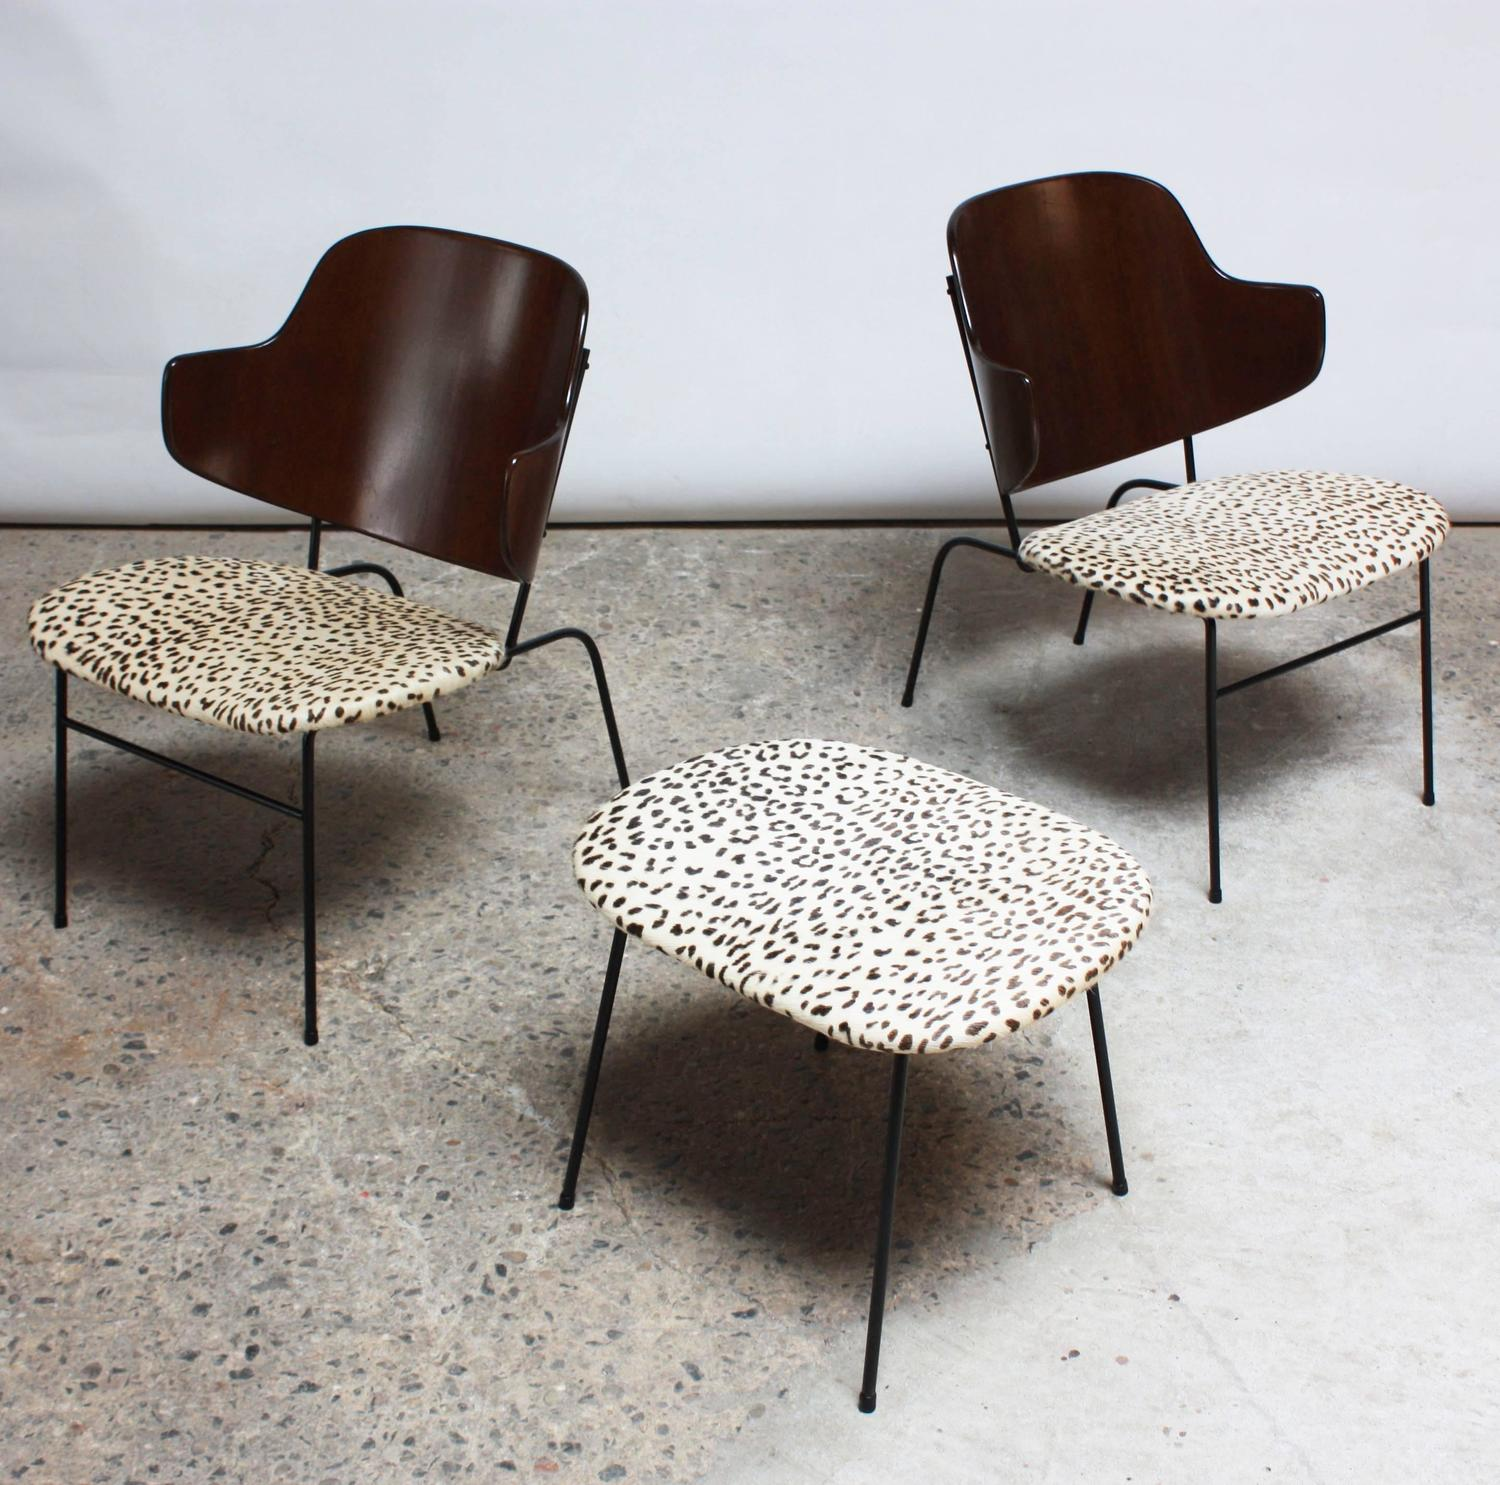 Rare IB Kofod Larsen Penguin Chairs and Ottoman in Leopard Print